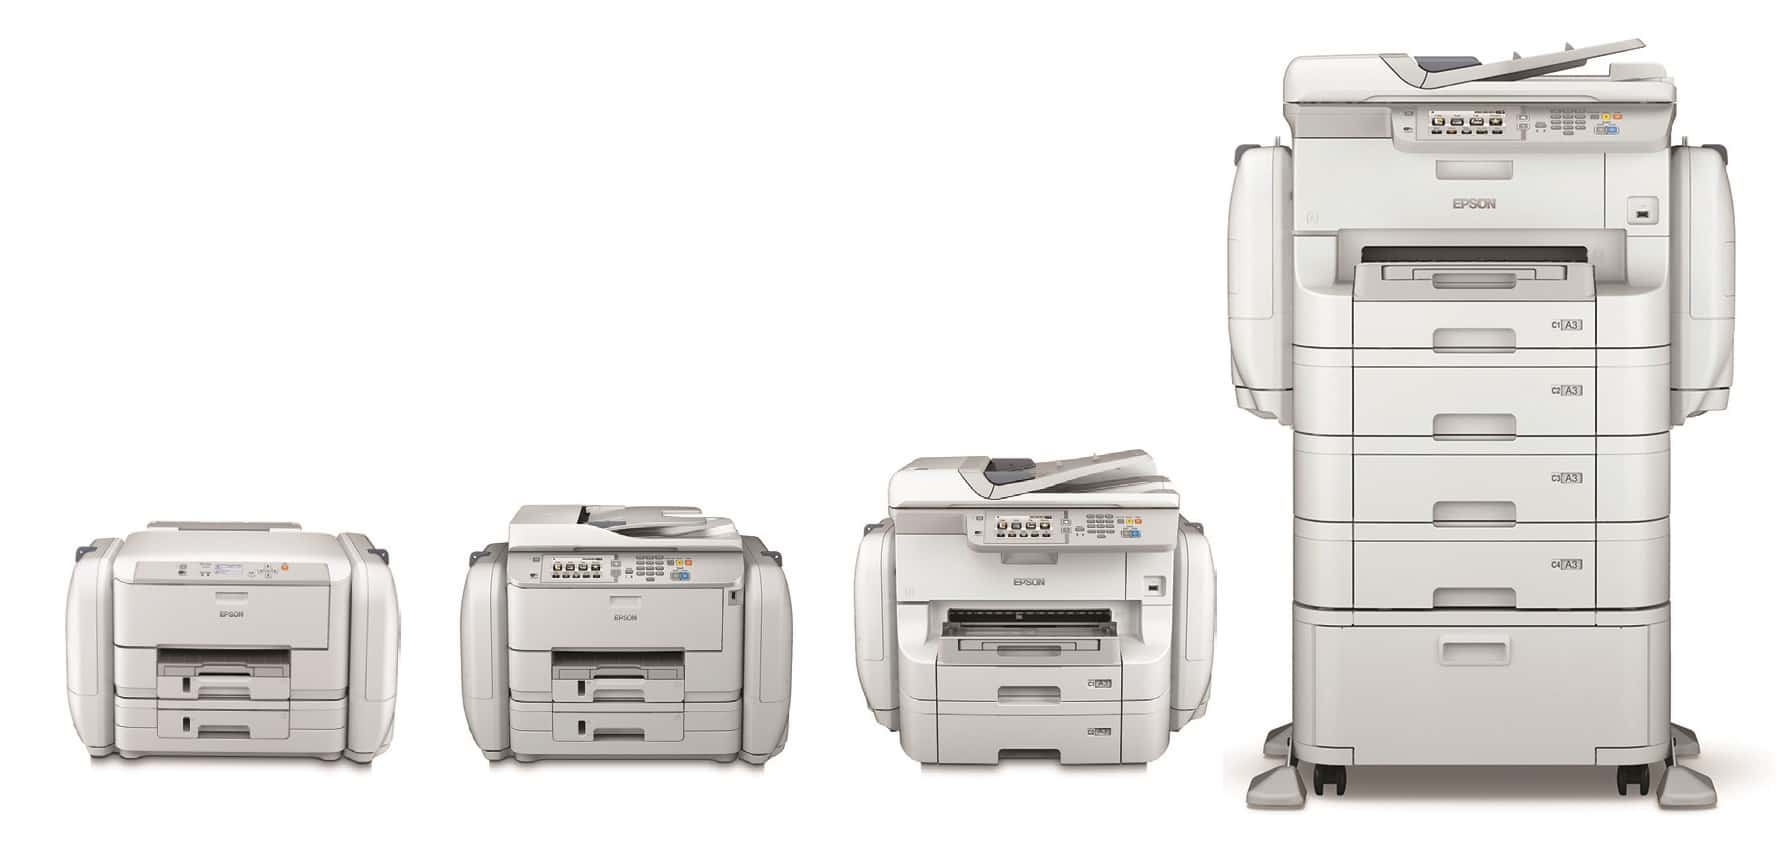 ASL Group Ltd joins Epson's Printer Revolution